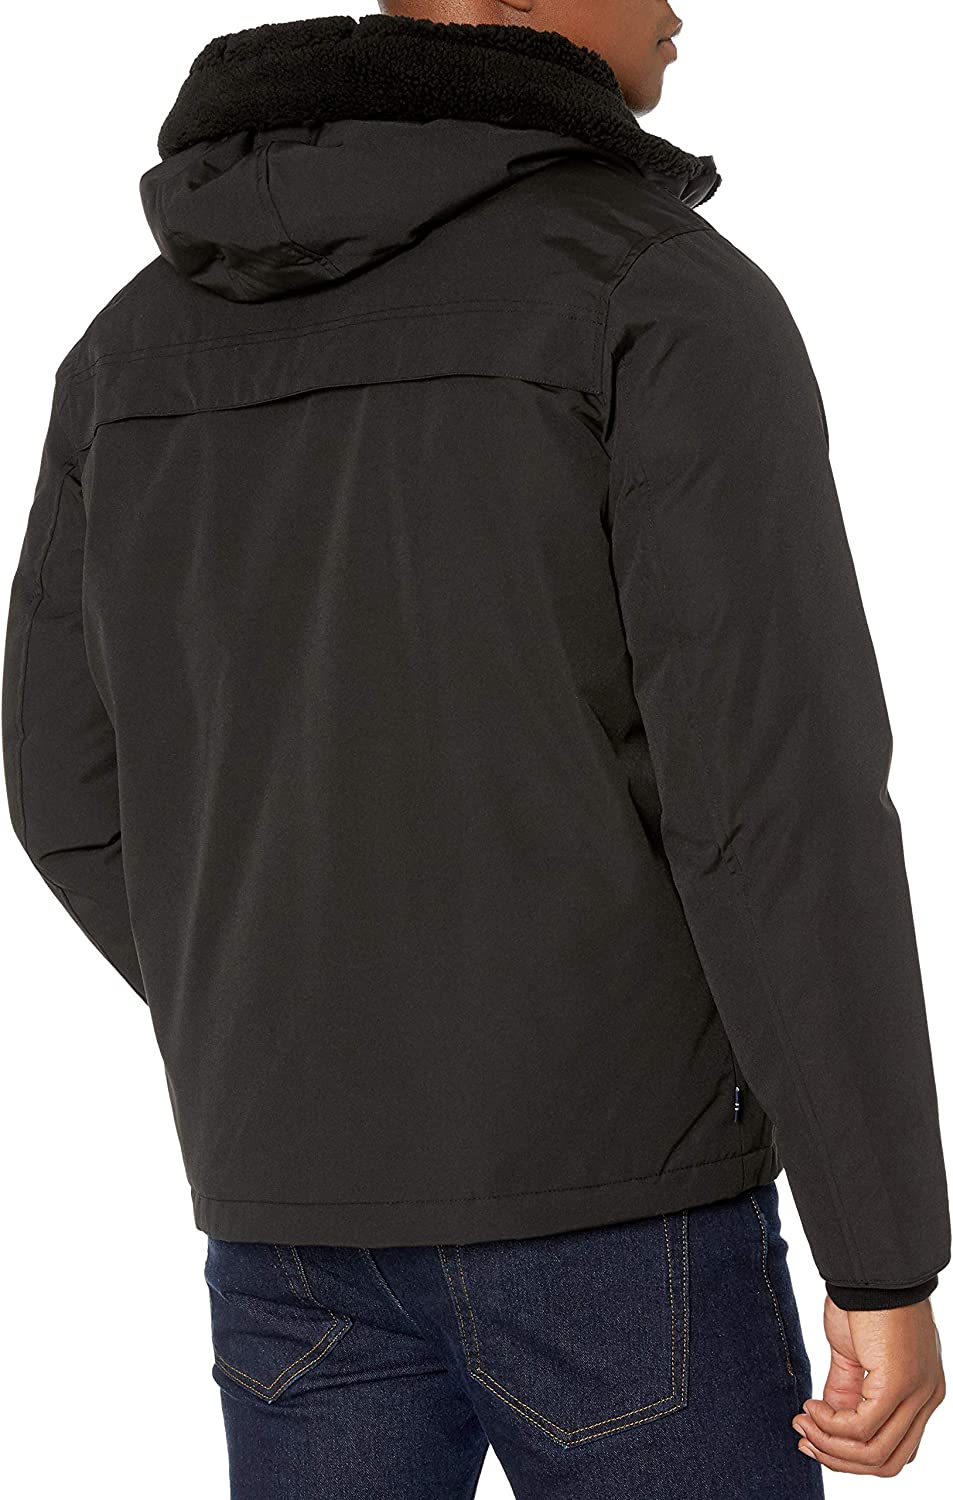 IZOD Mens Ultra Warm Hipster Jacket with Sherpa Trim